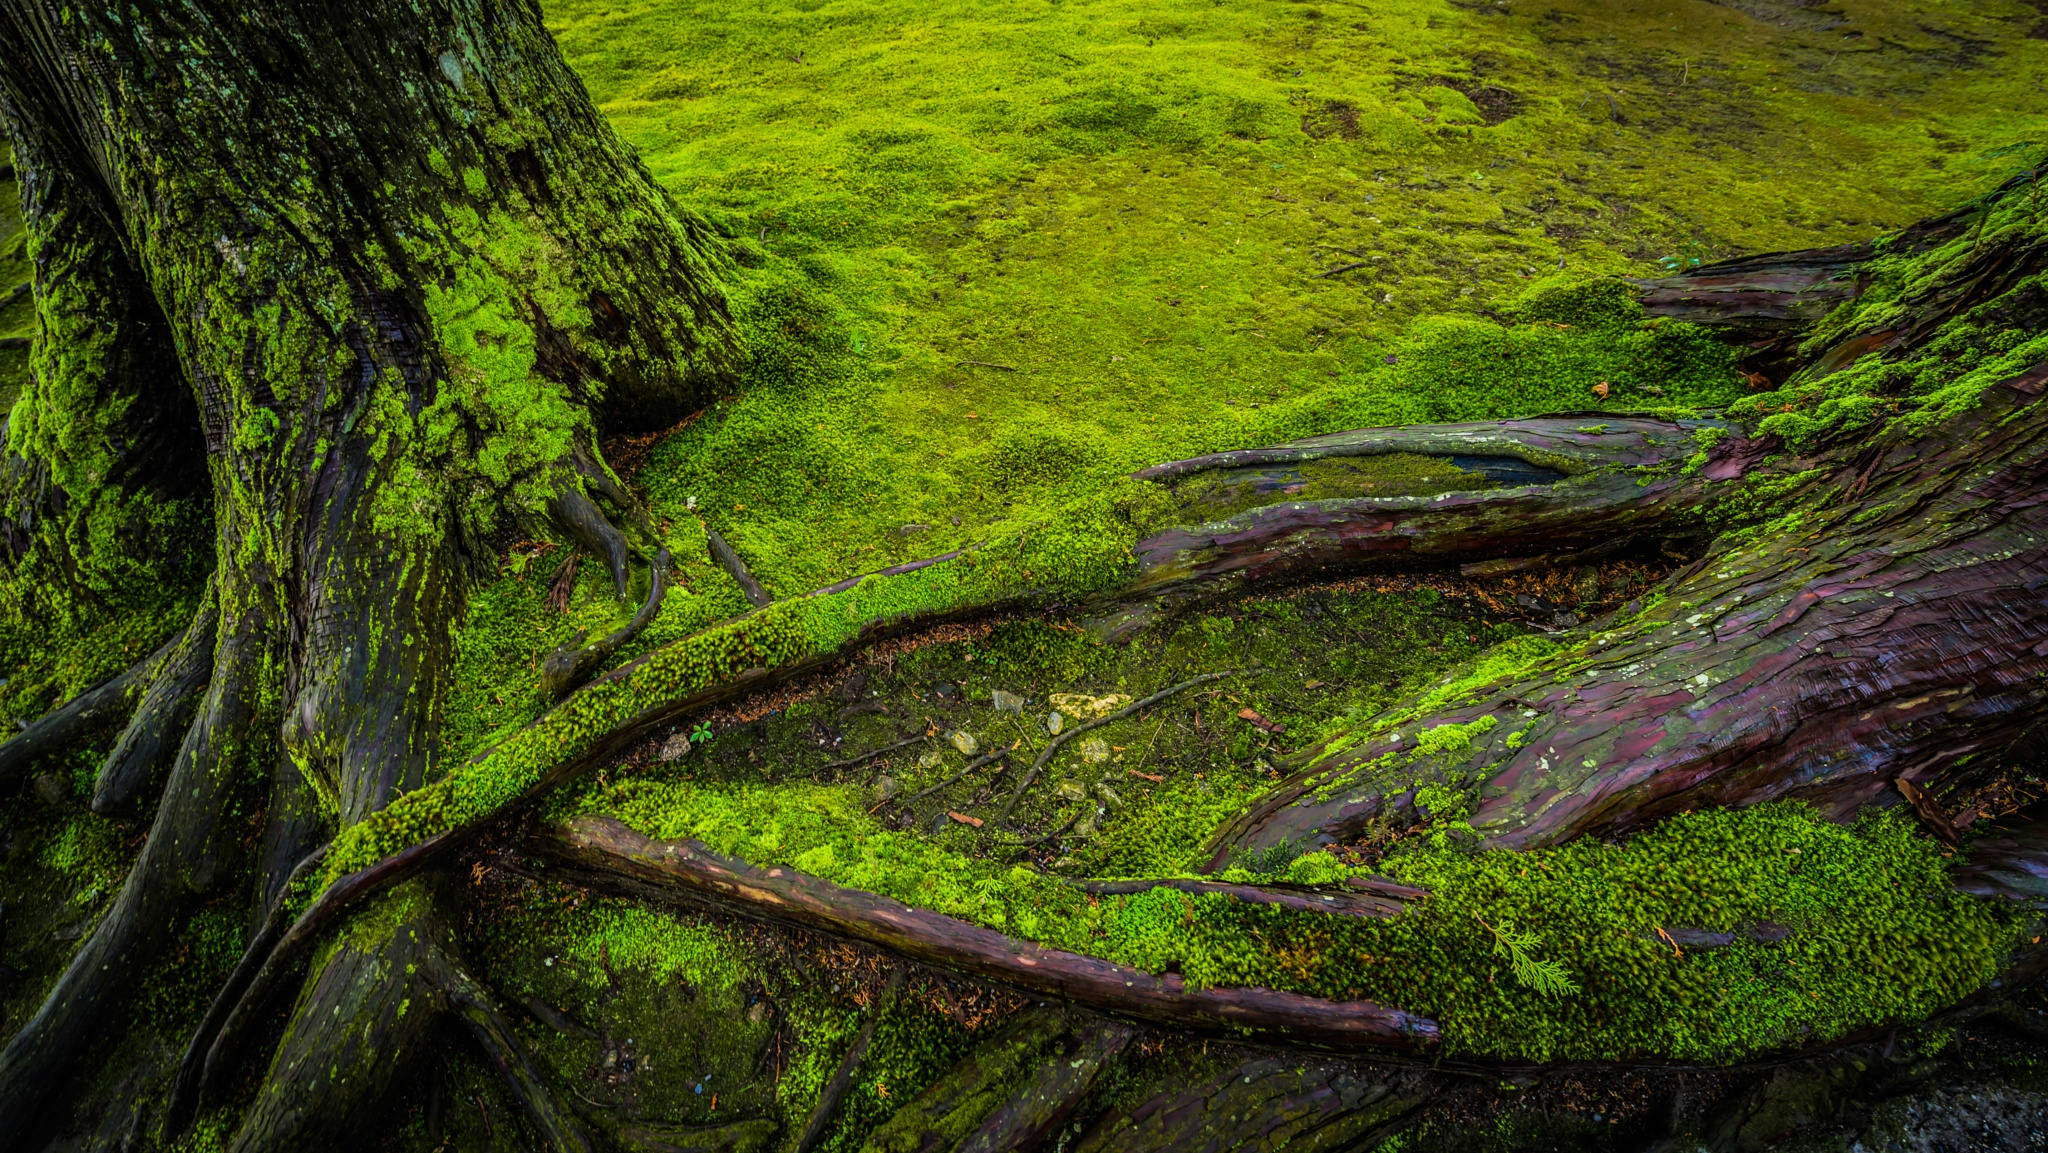 Battle of moss and roots by muteking